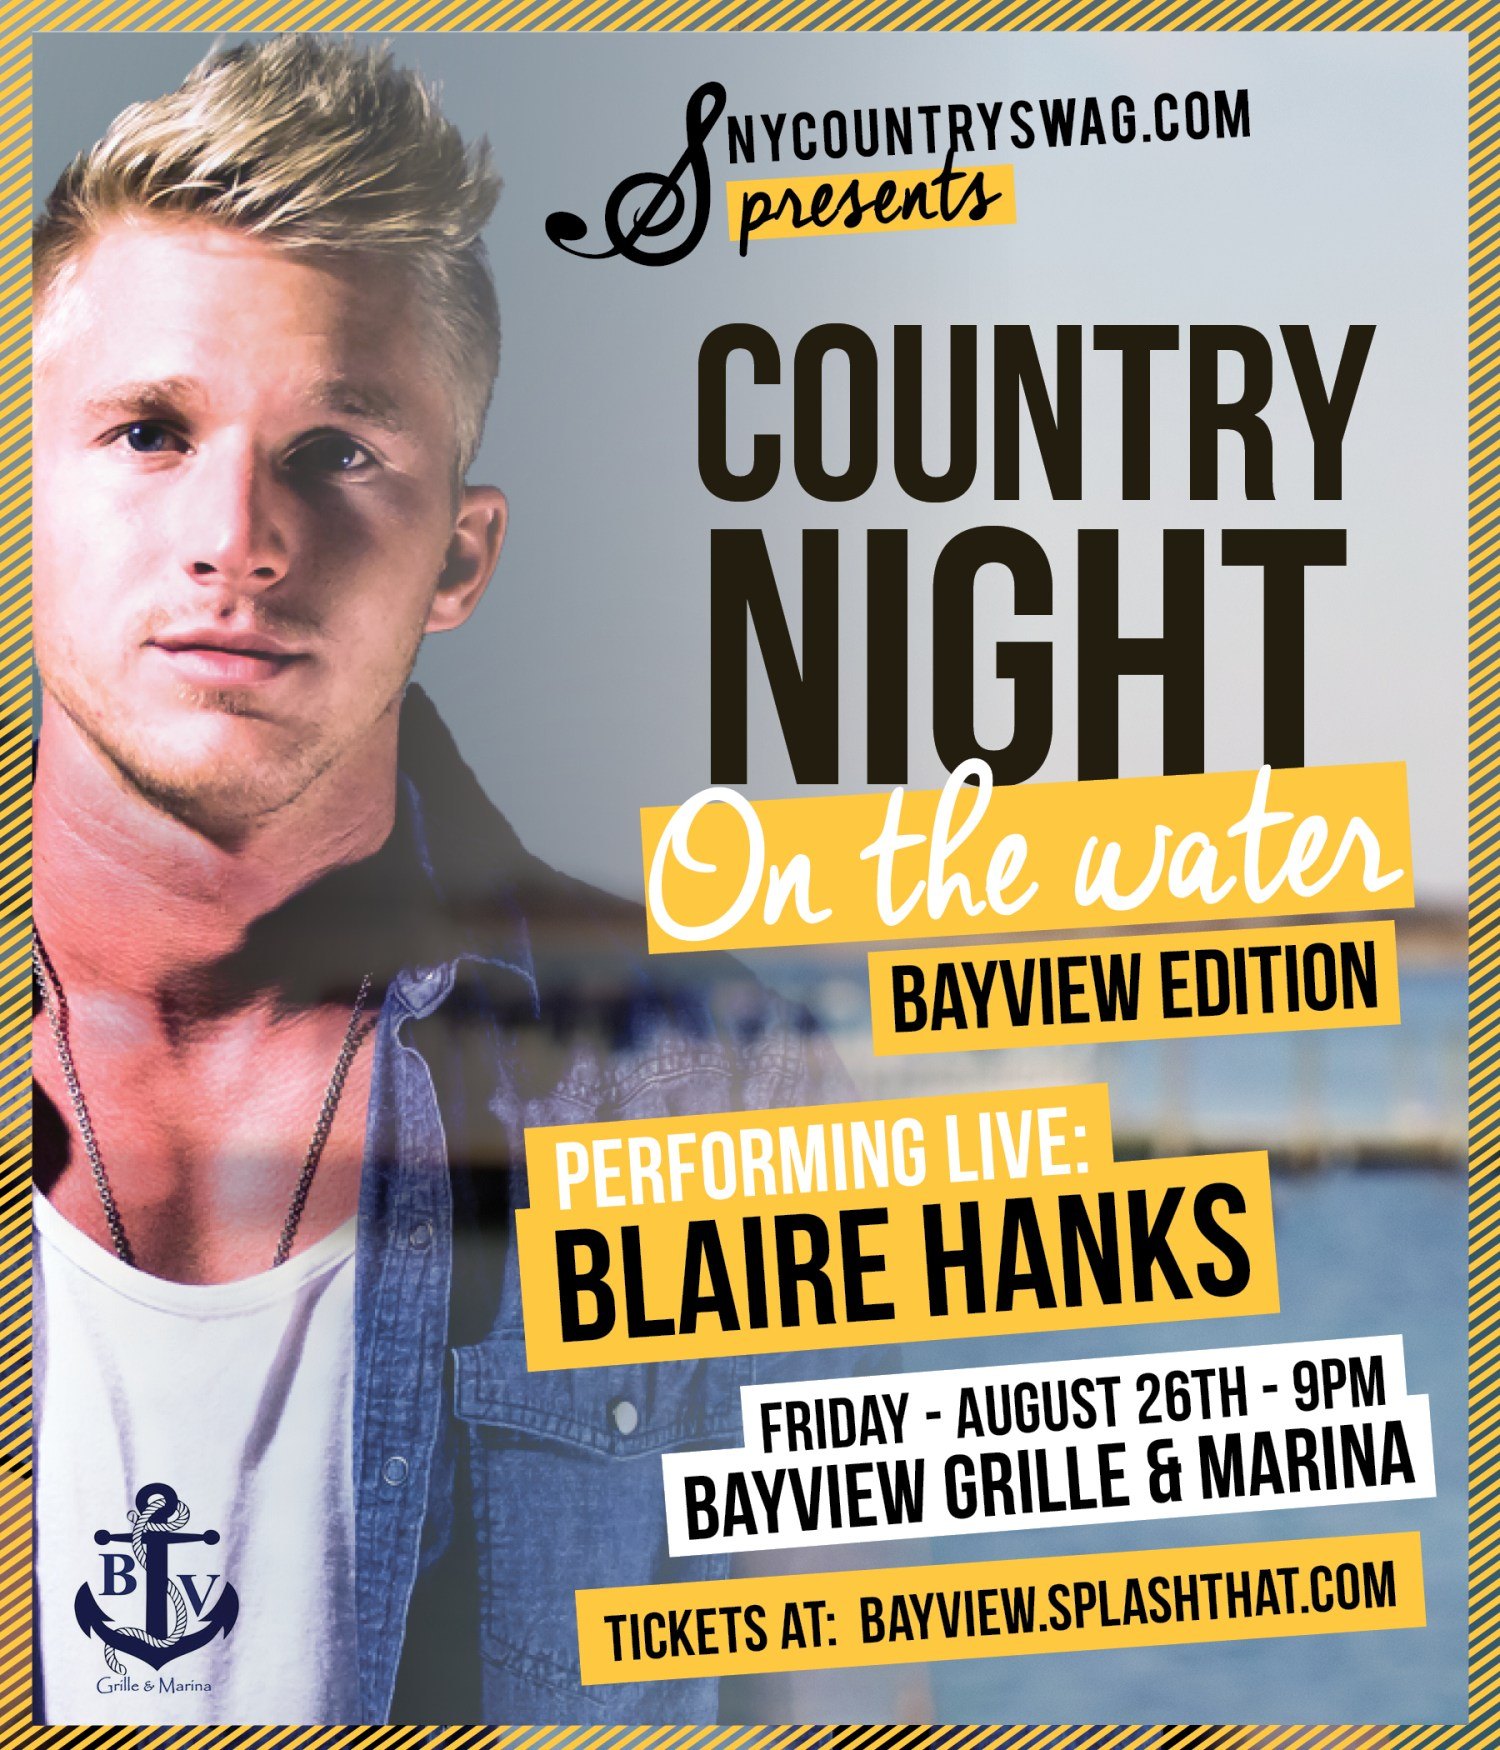 Bayview Grille - Blaire Hanks